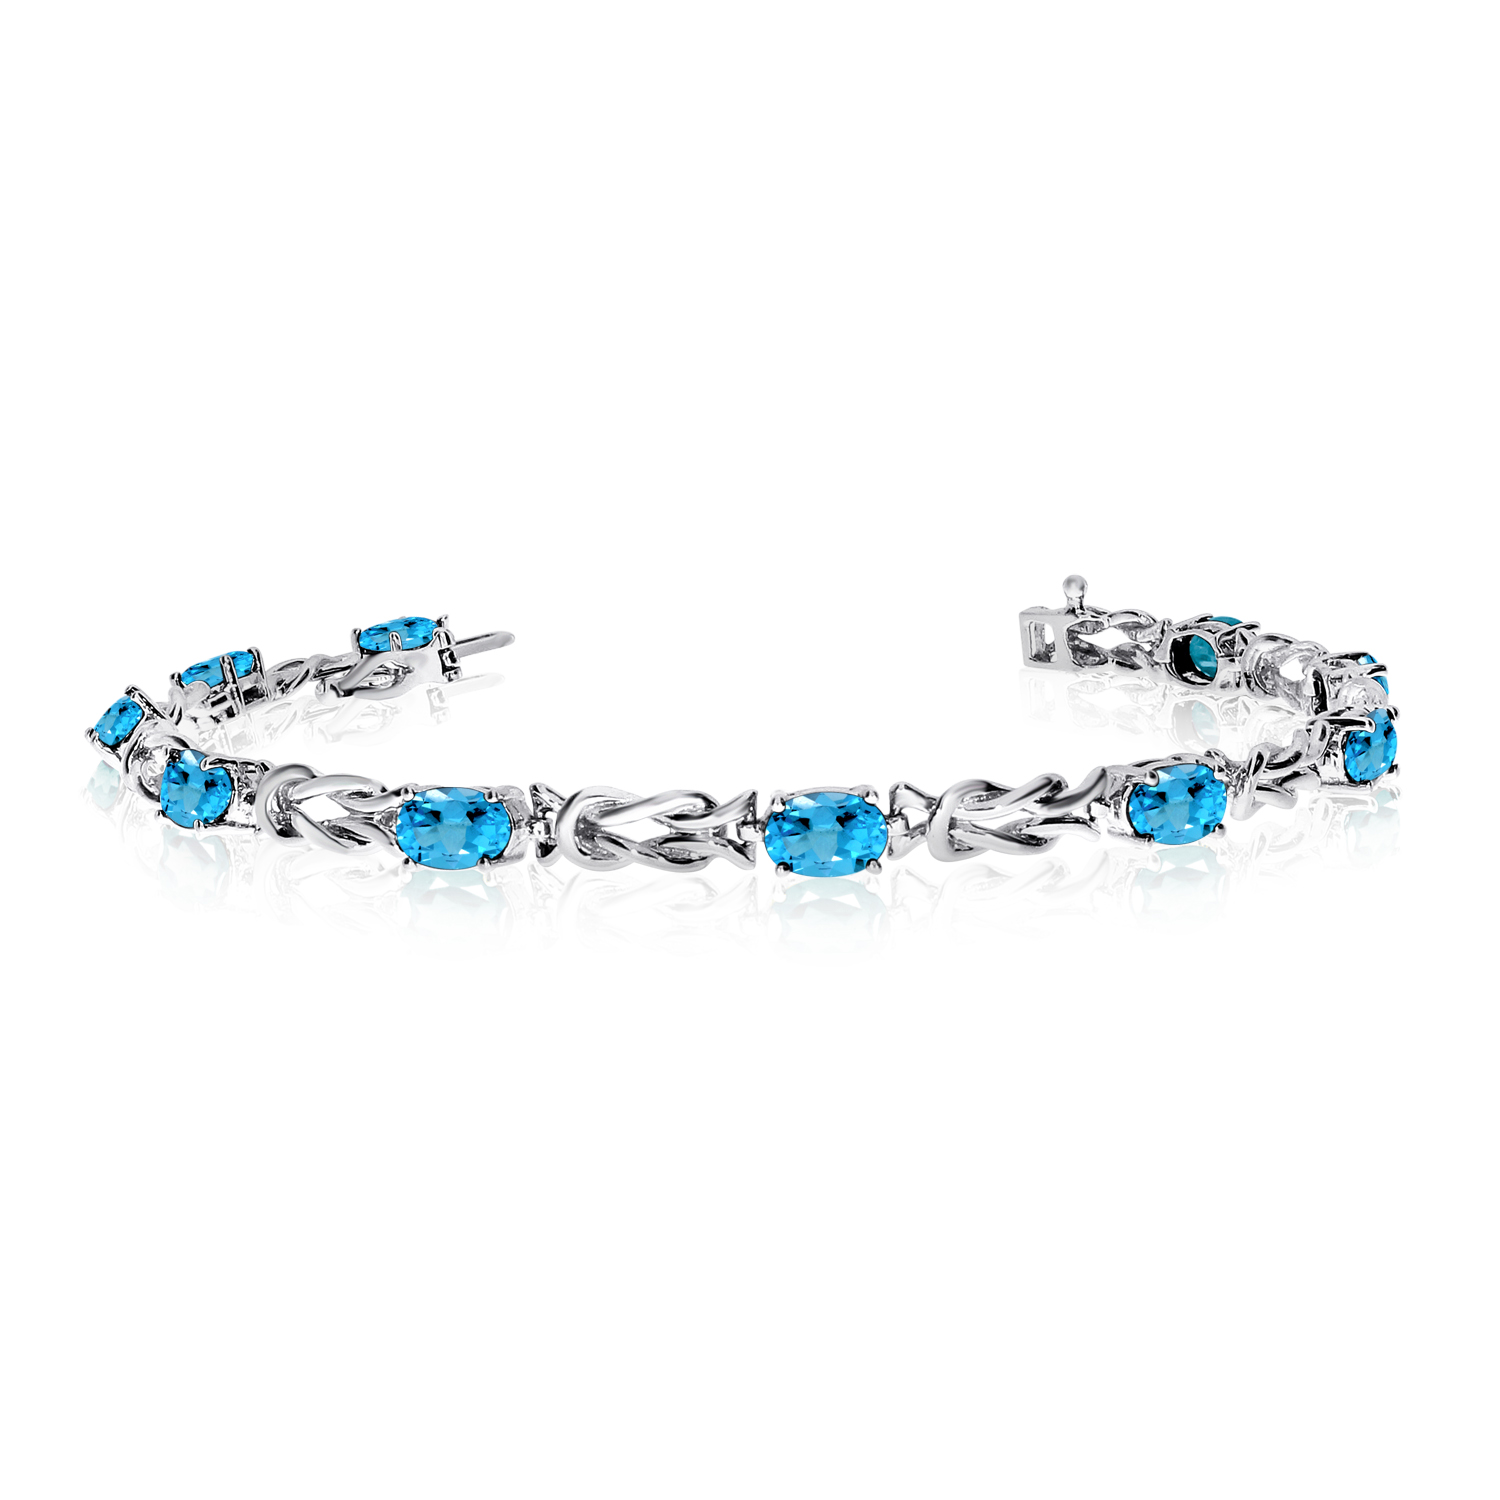 10K White Gold Oval Blue Topaz Reef Knot Bracelet by